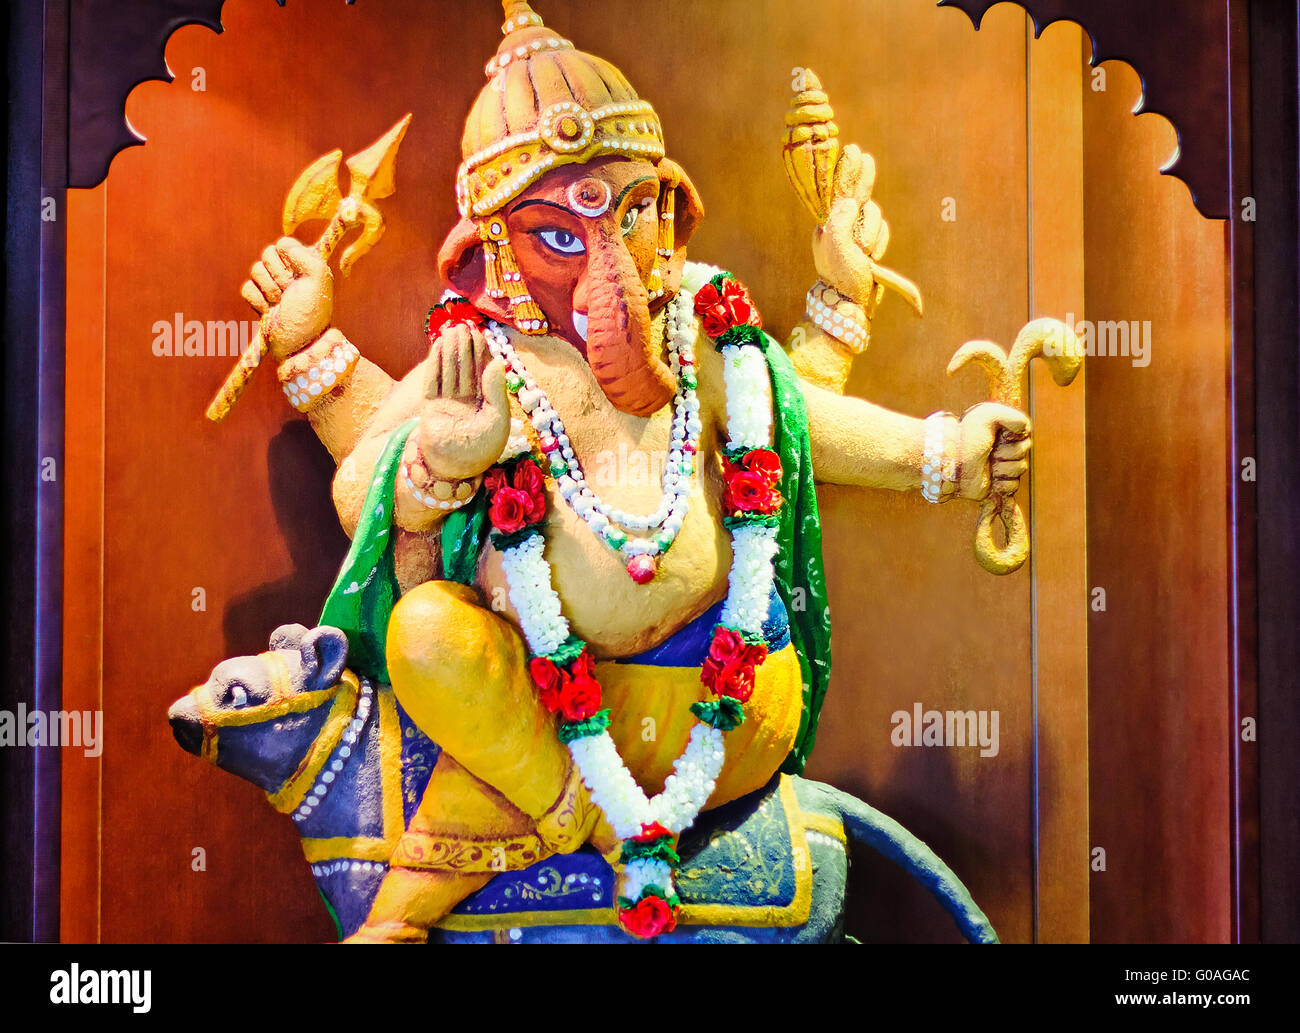 Statue of the Indian deity Ganesh. - Stock Image